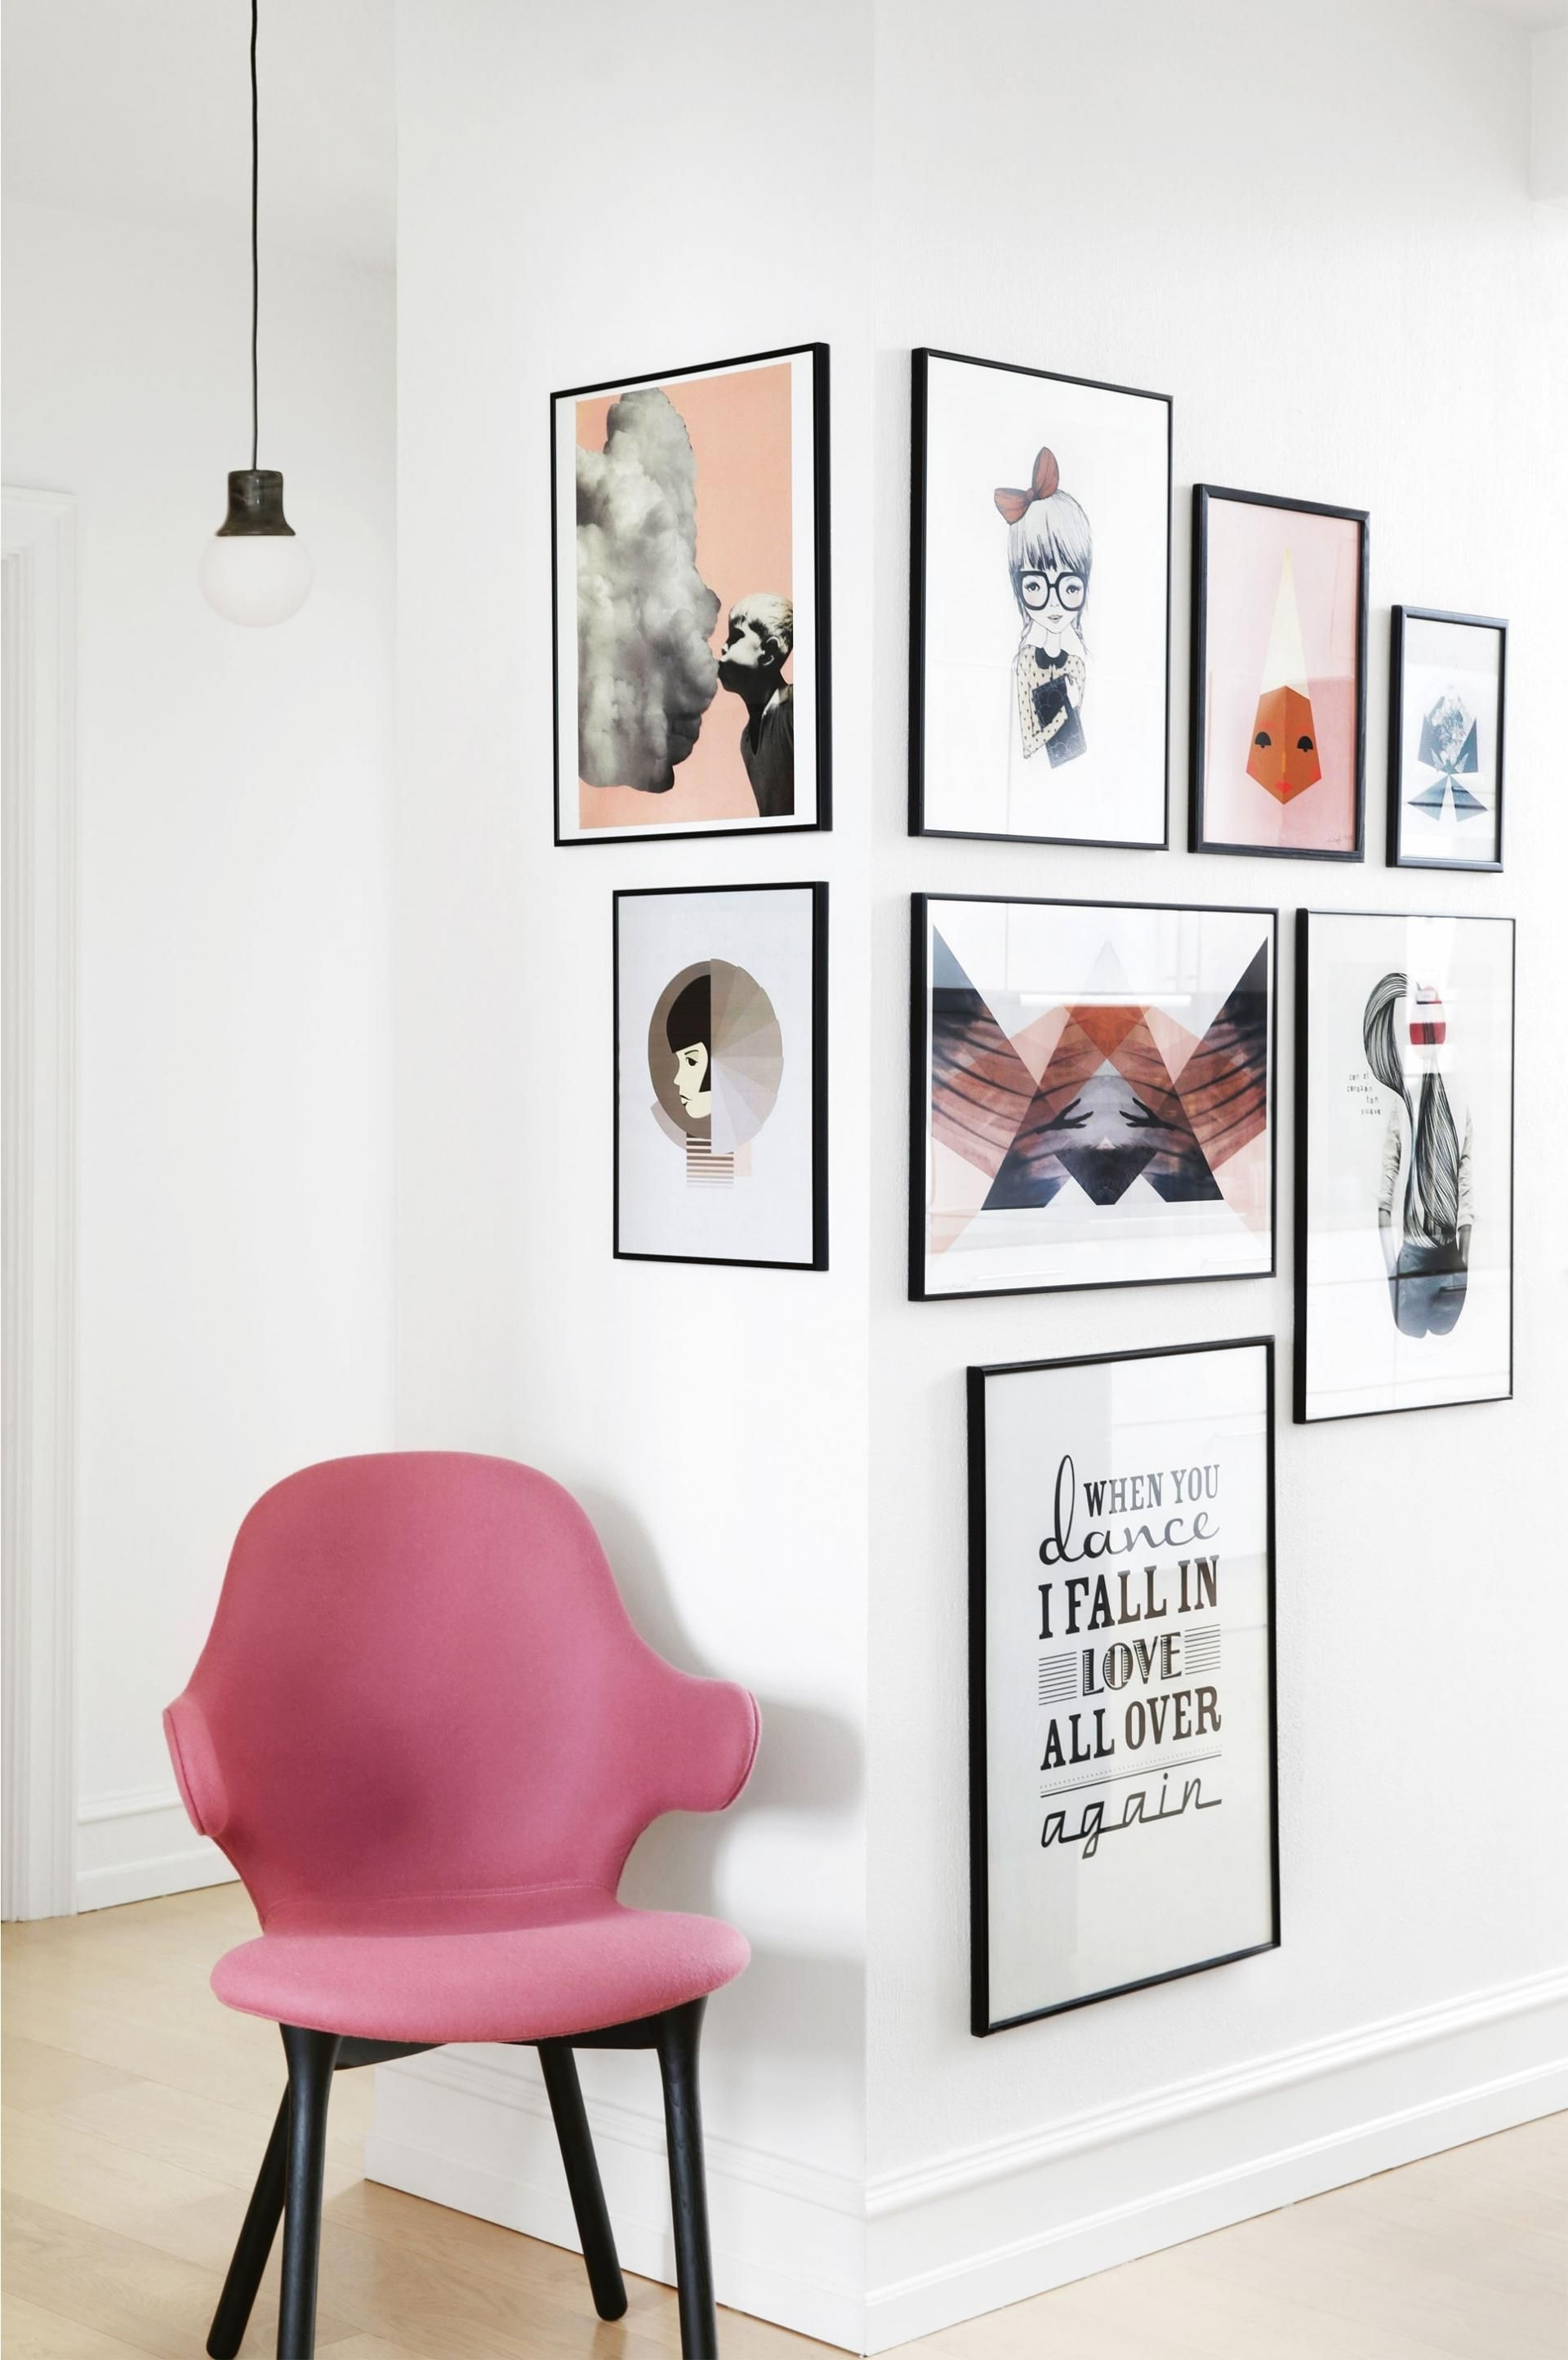 17 Unique Wall Art Display Ideas That Aren't Another Gallery Wall Throughout Latest Corner Wall Art (View 1 of 20)